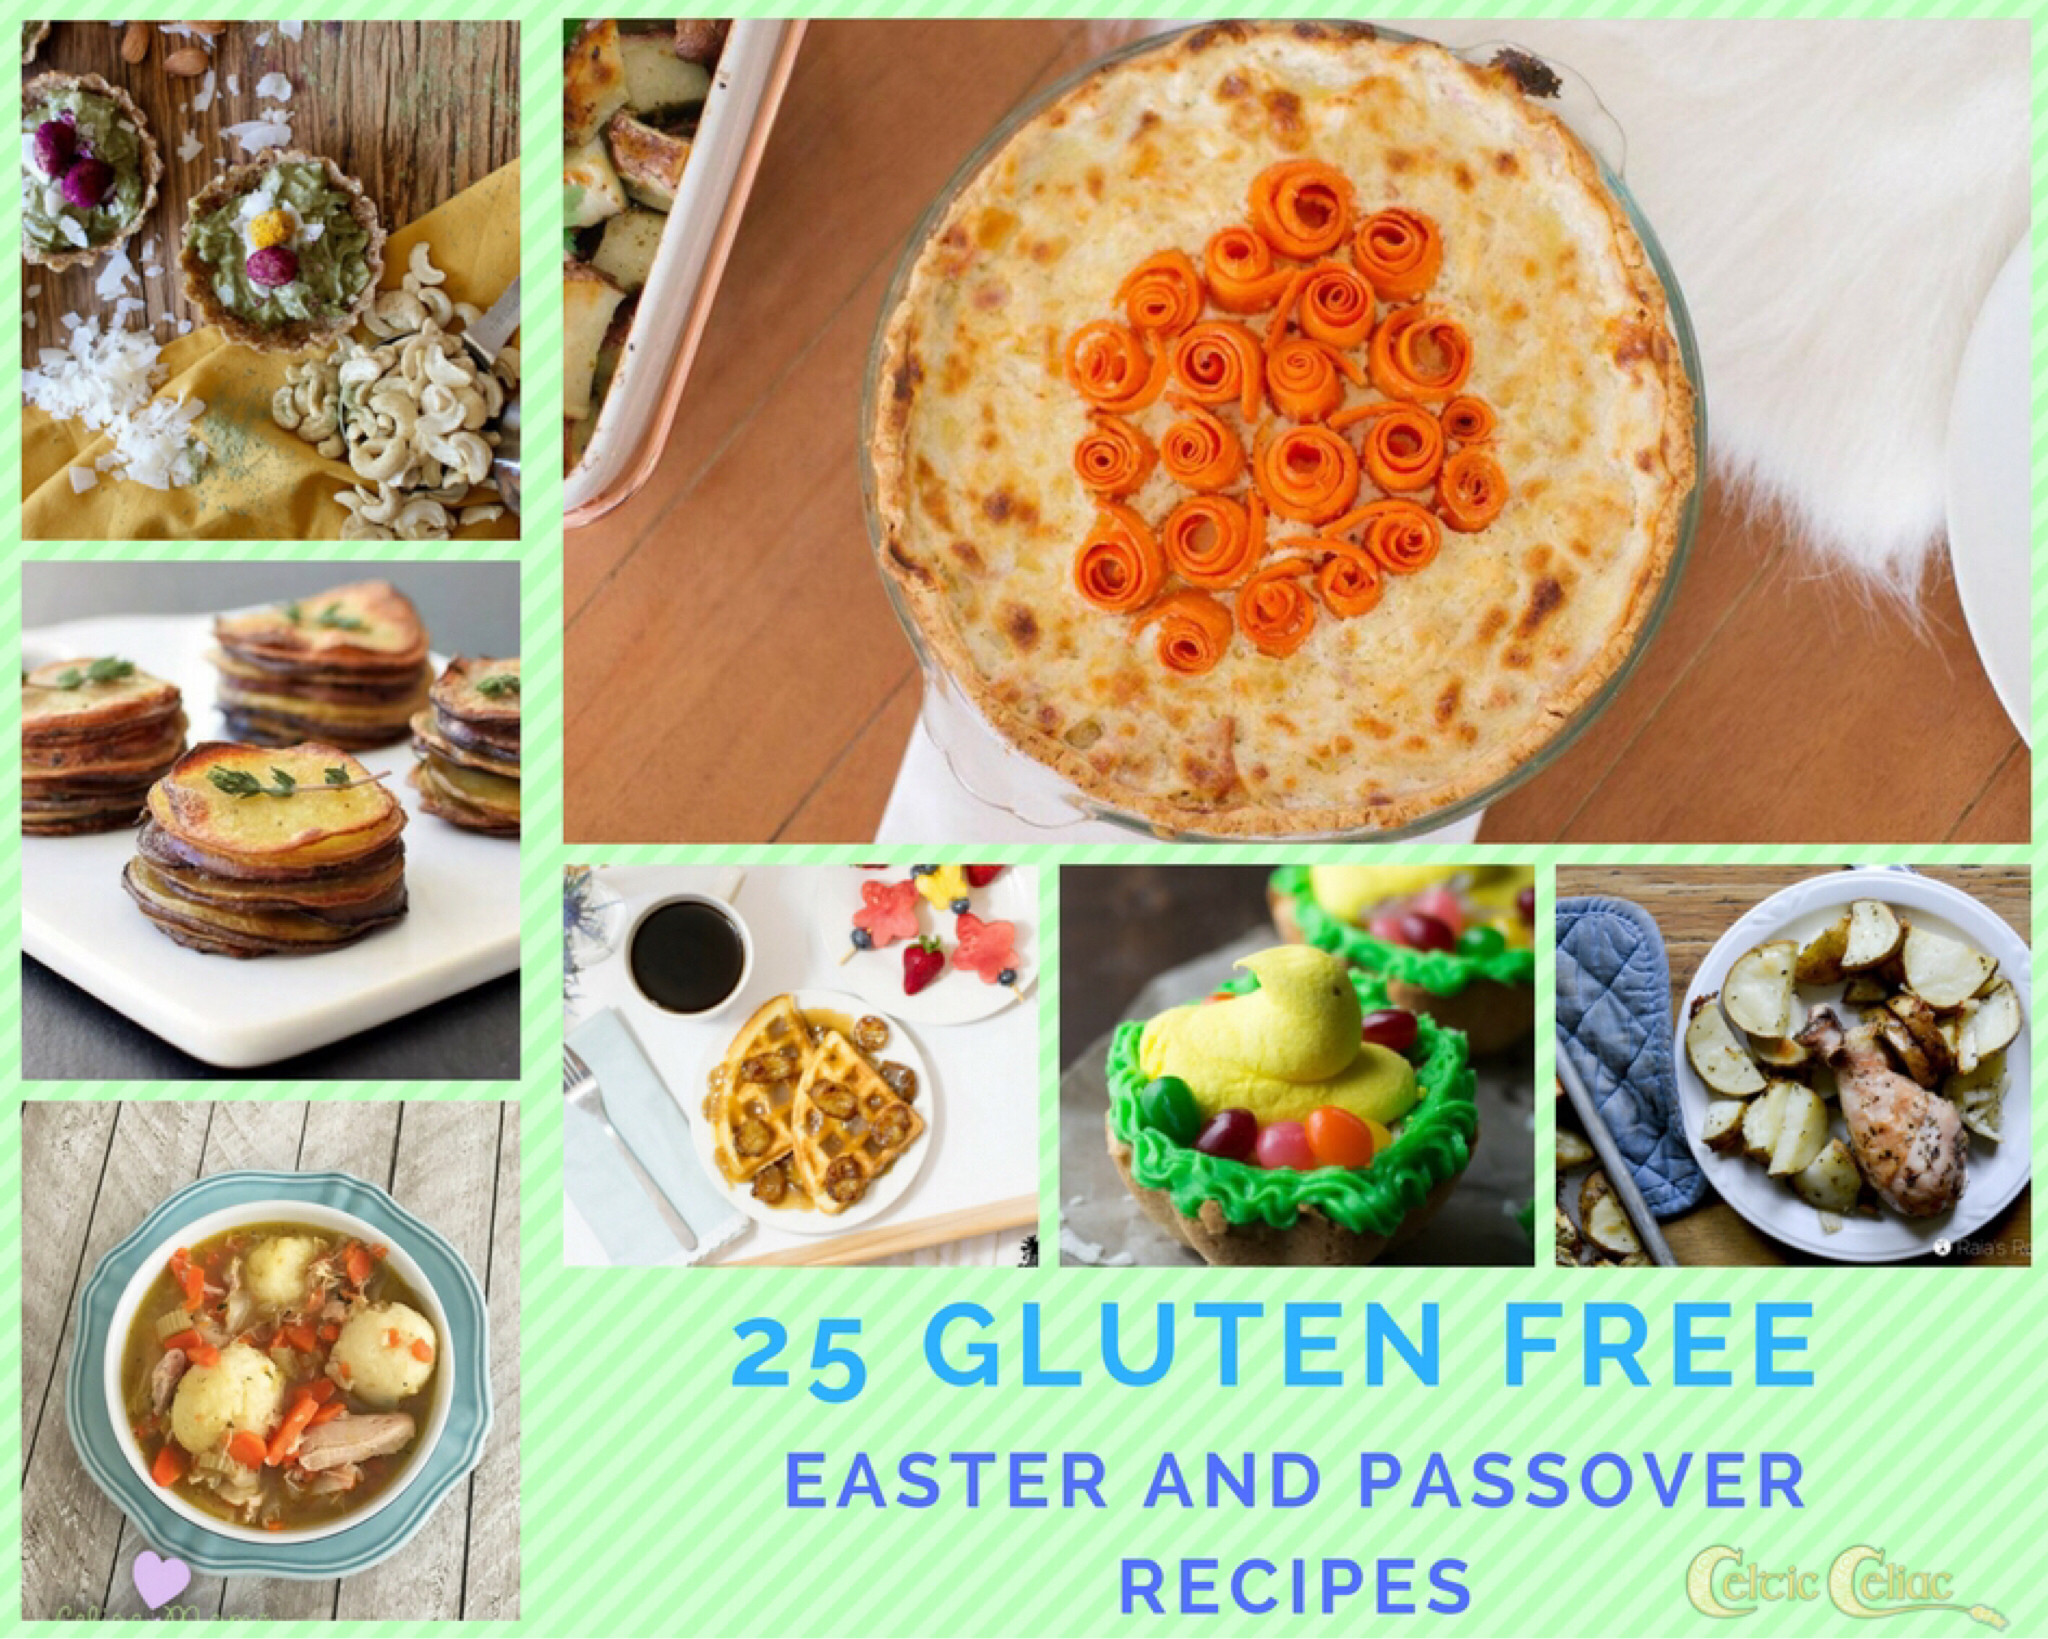 Gluten Free Easter Recipes  25 Gluten Free Recipes for Easter and Passover